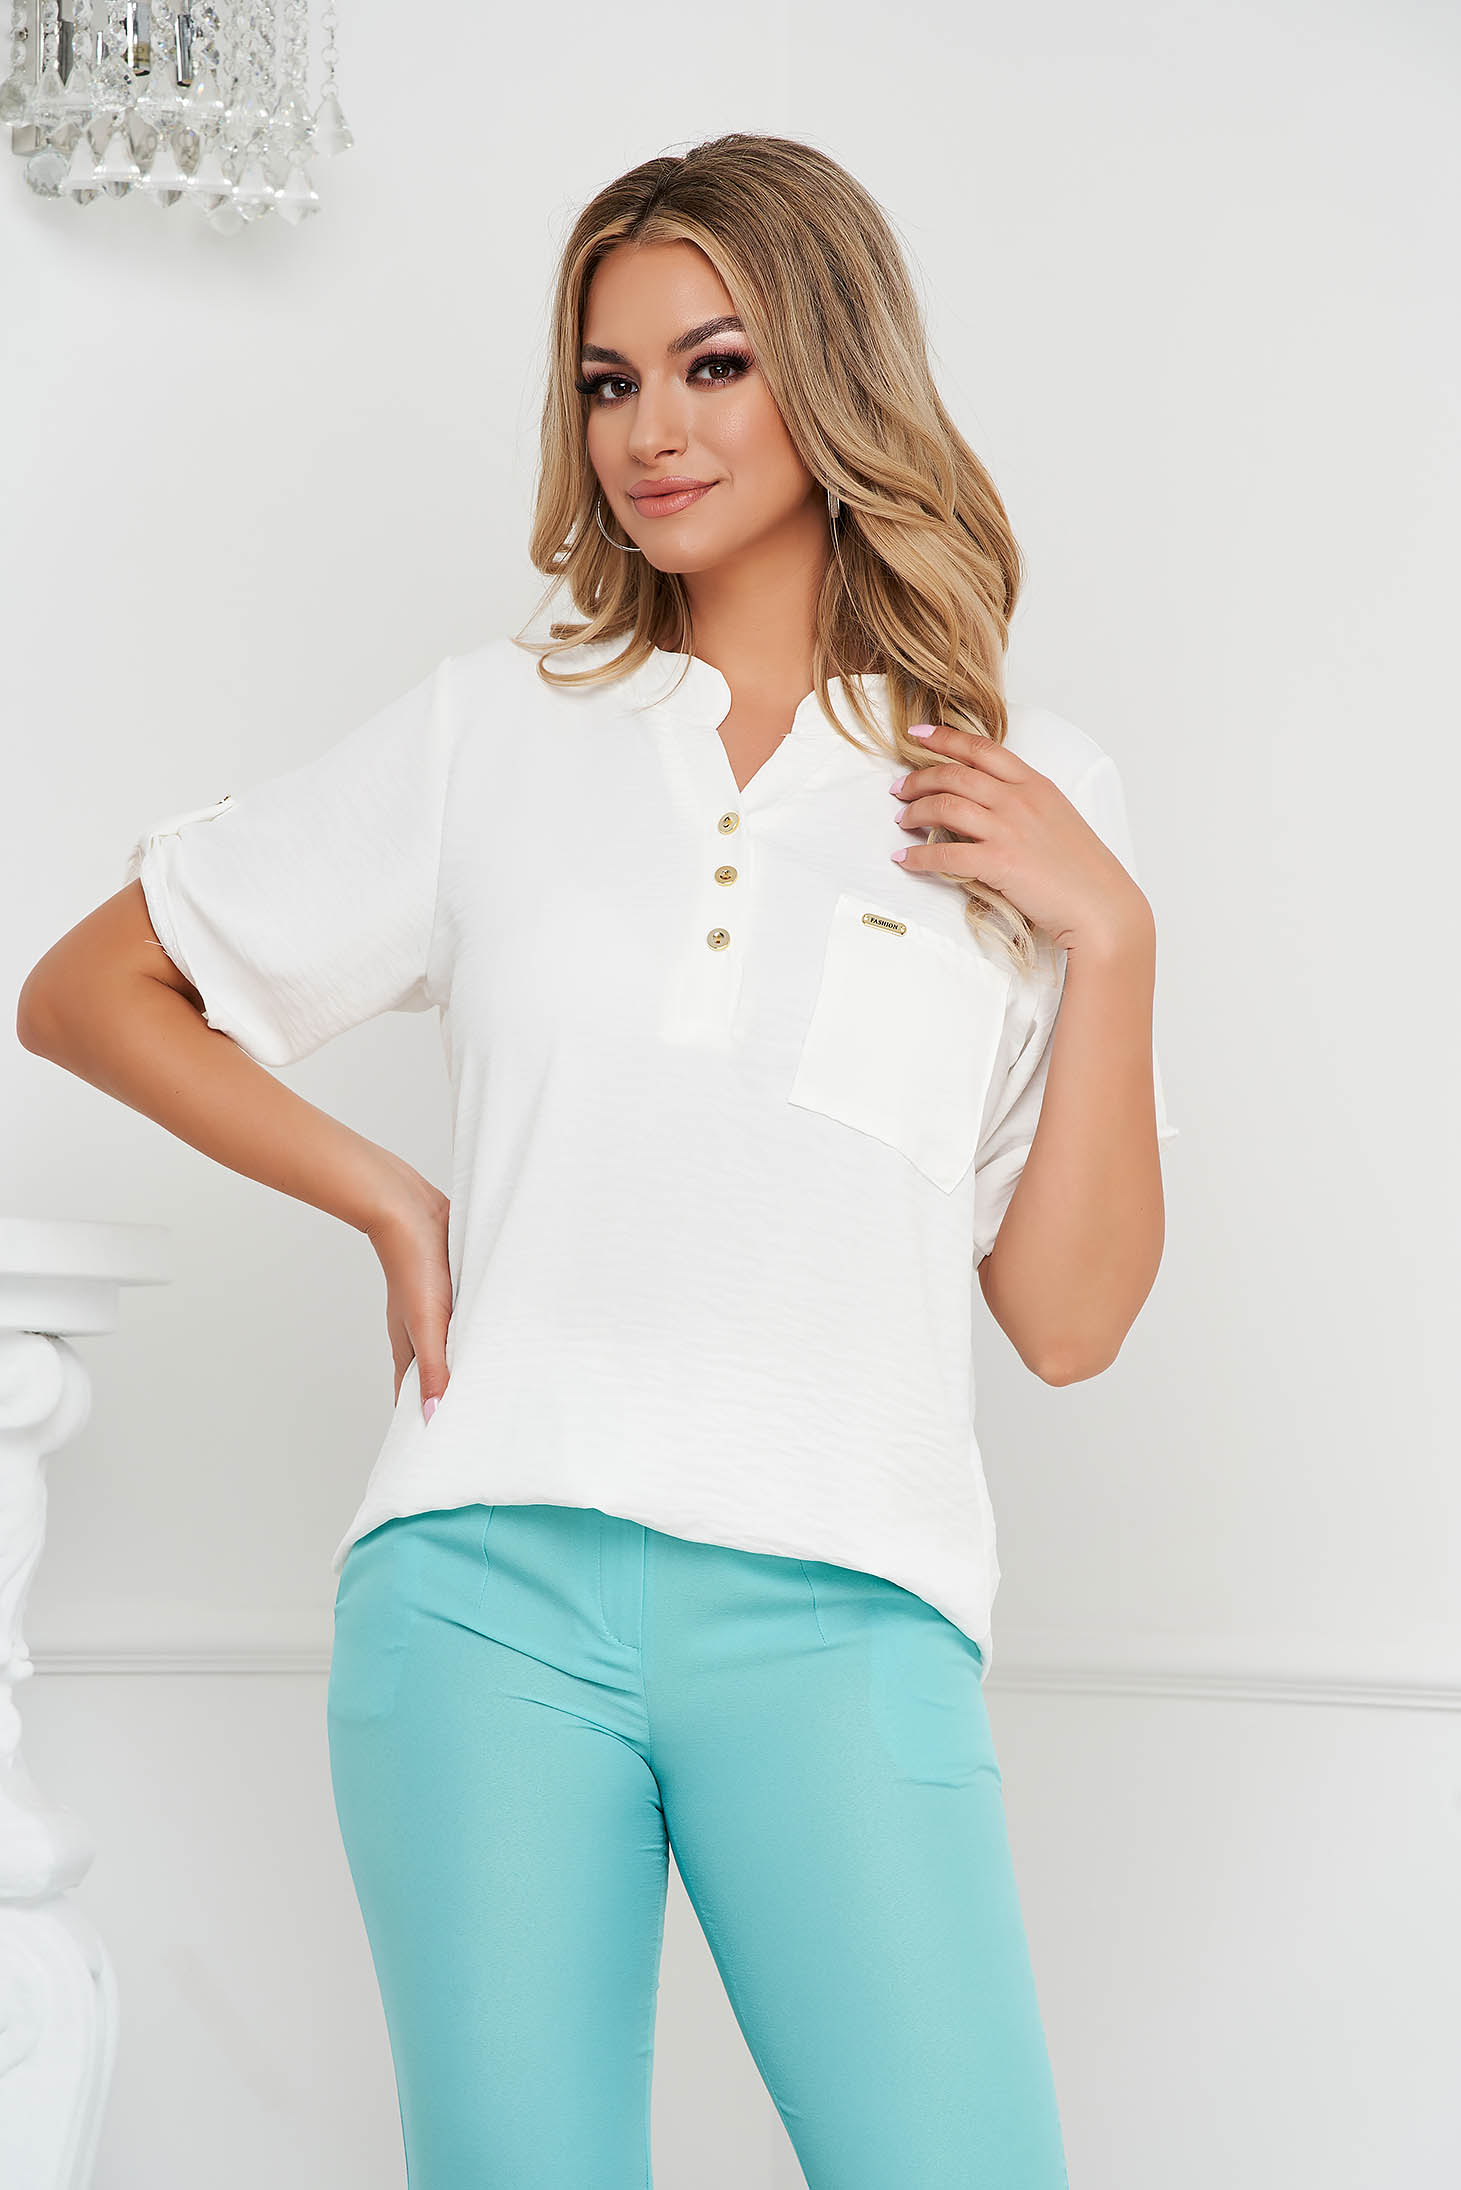 Ivory women`s blouse loose fit wrinkled material a front pocket